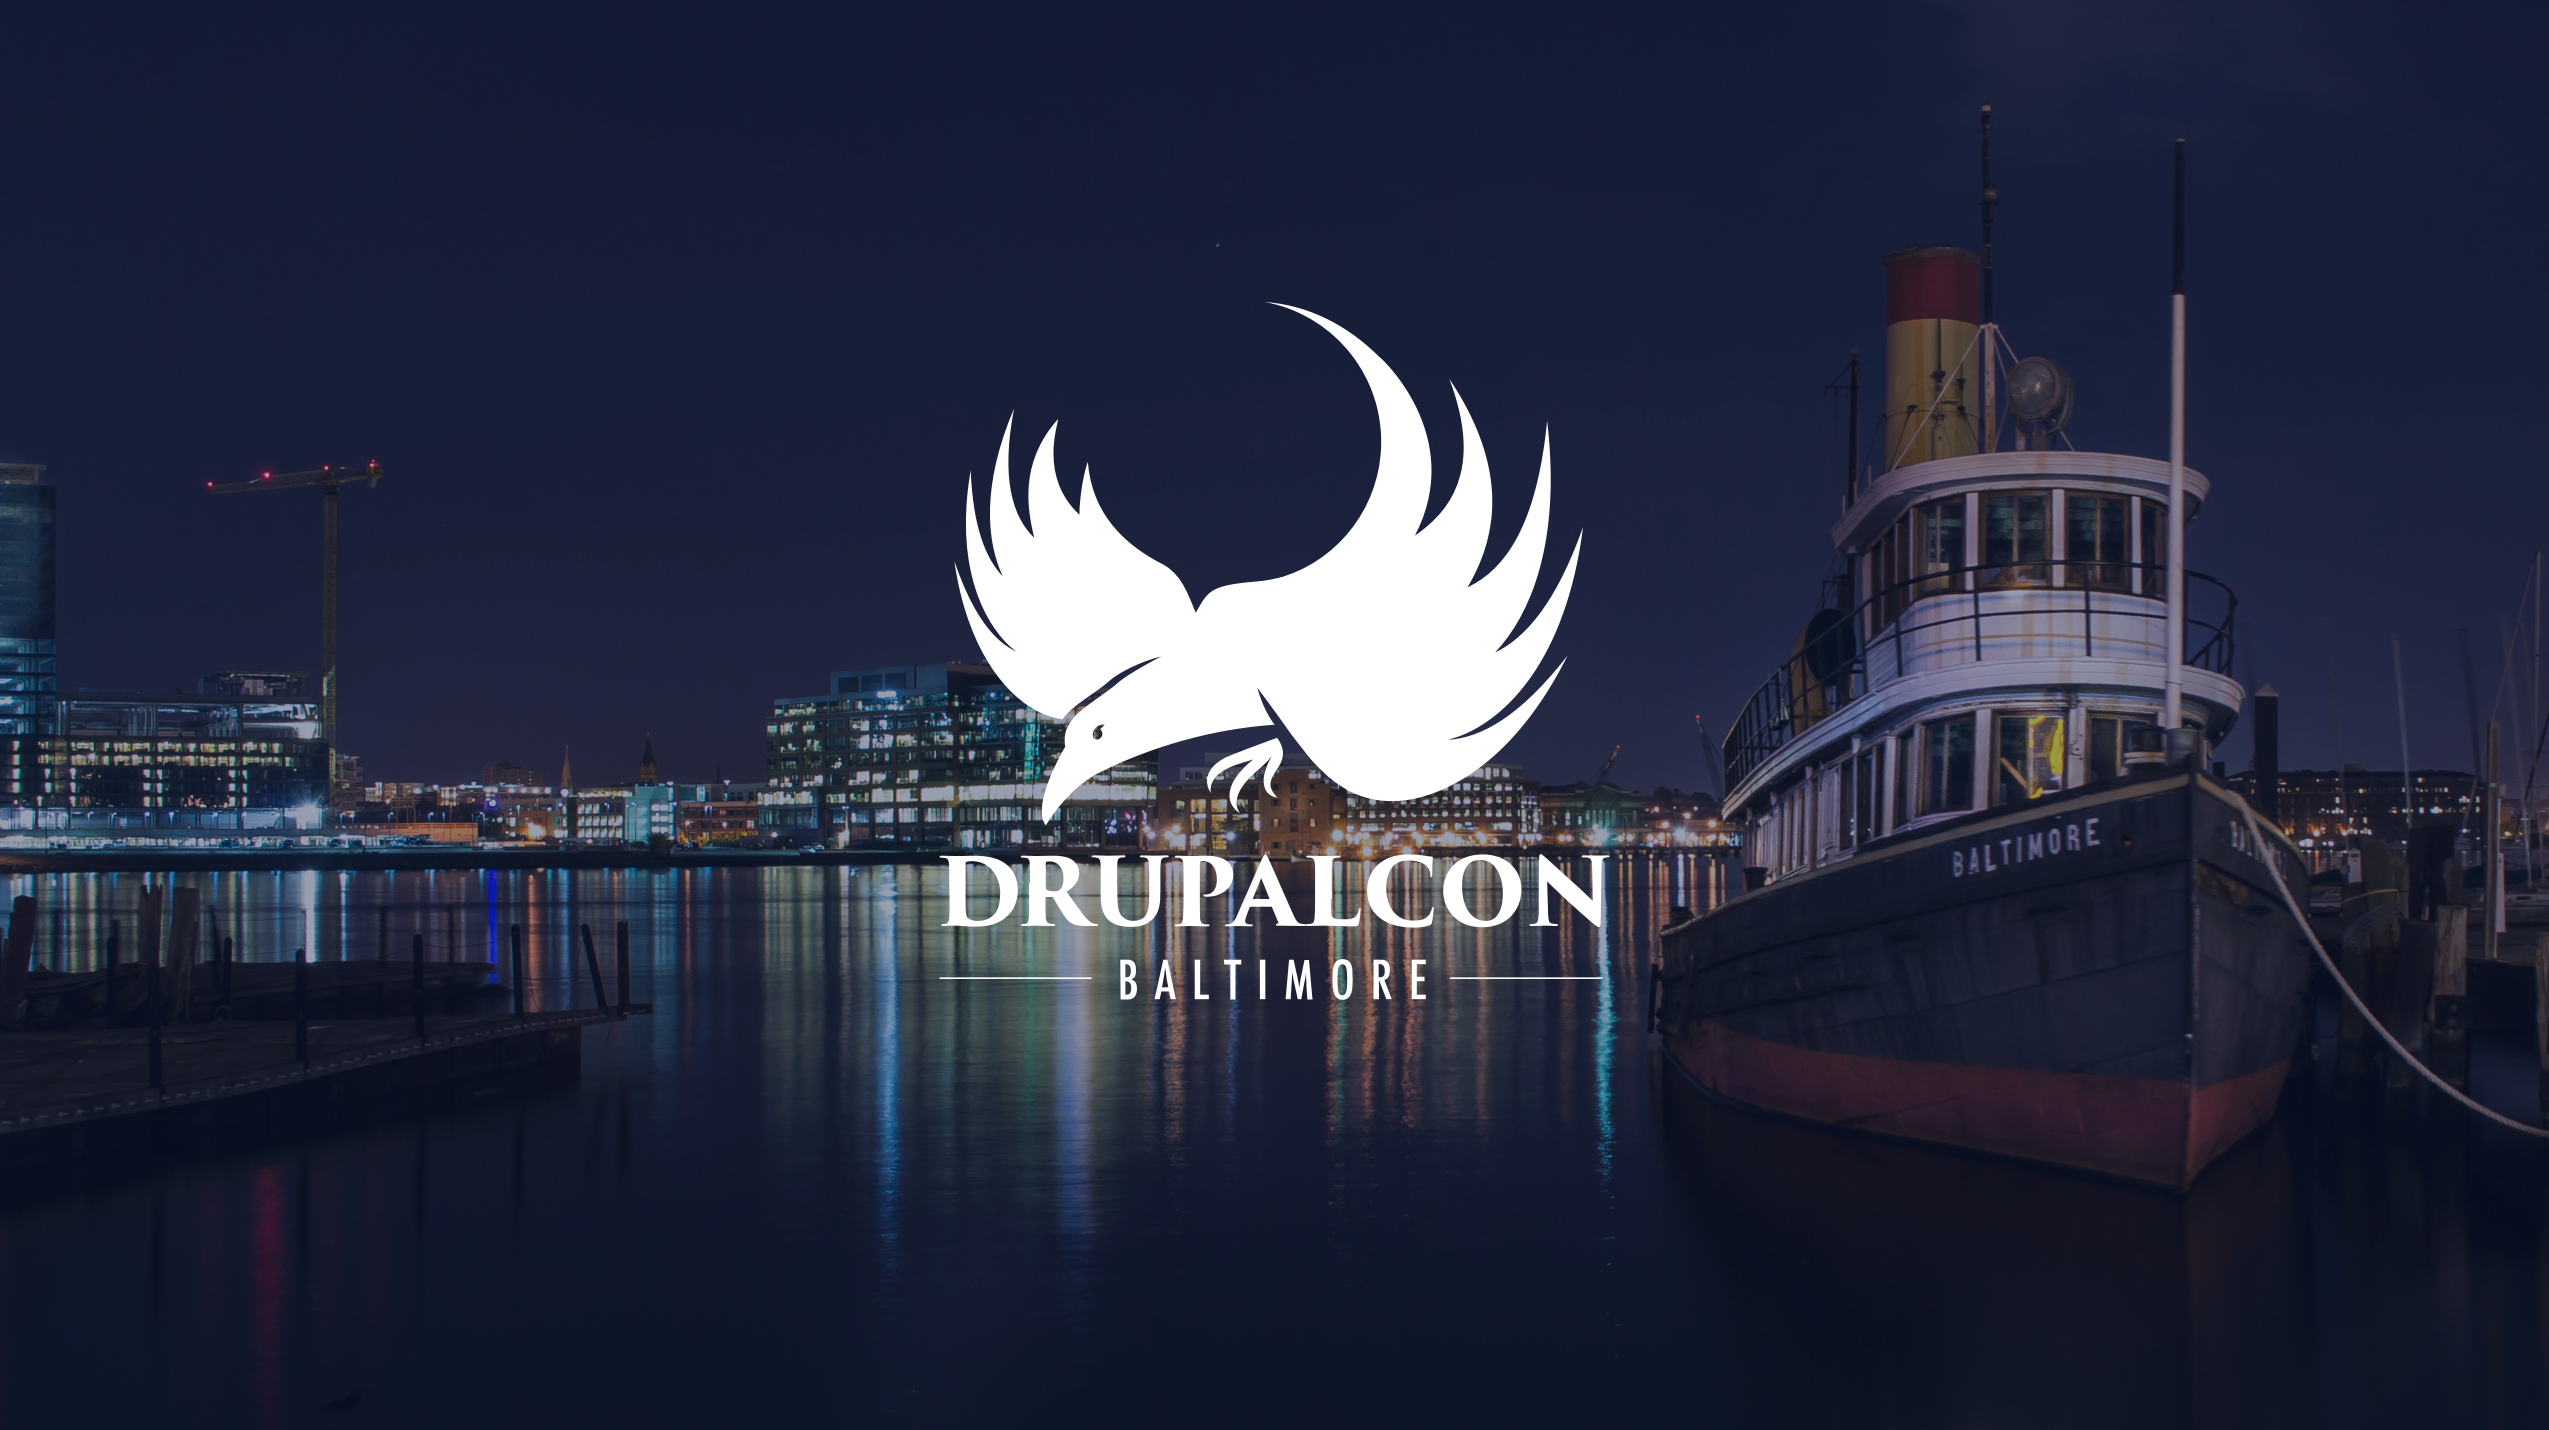 FFW is attending DrupalCon Baltimore